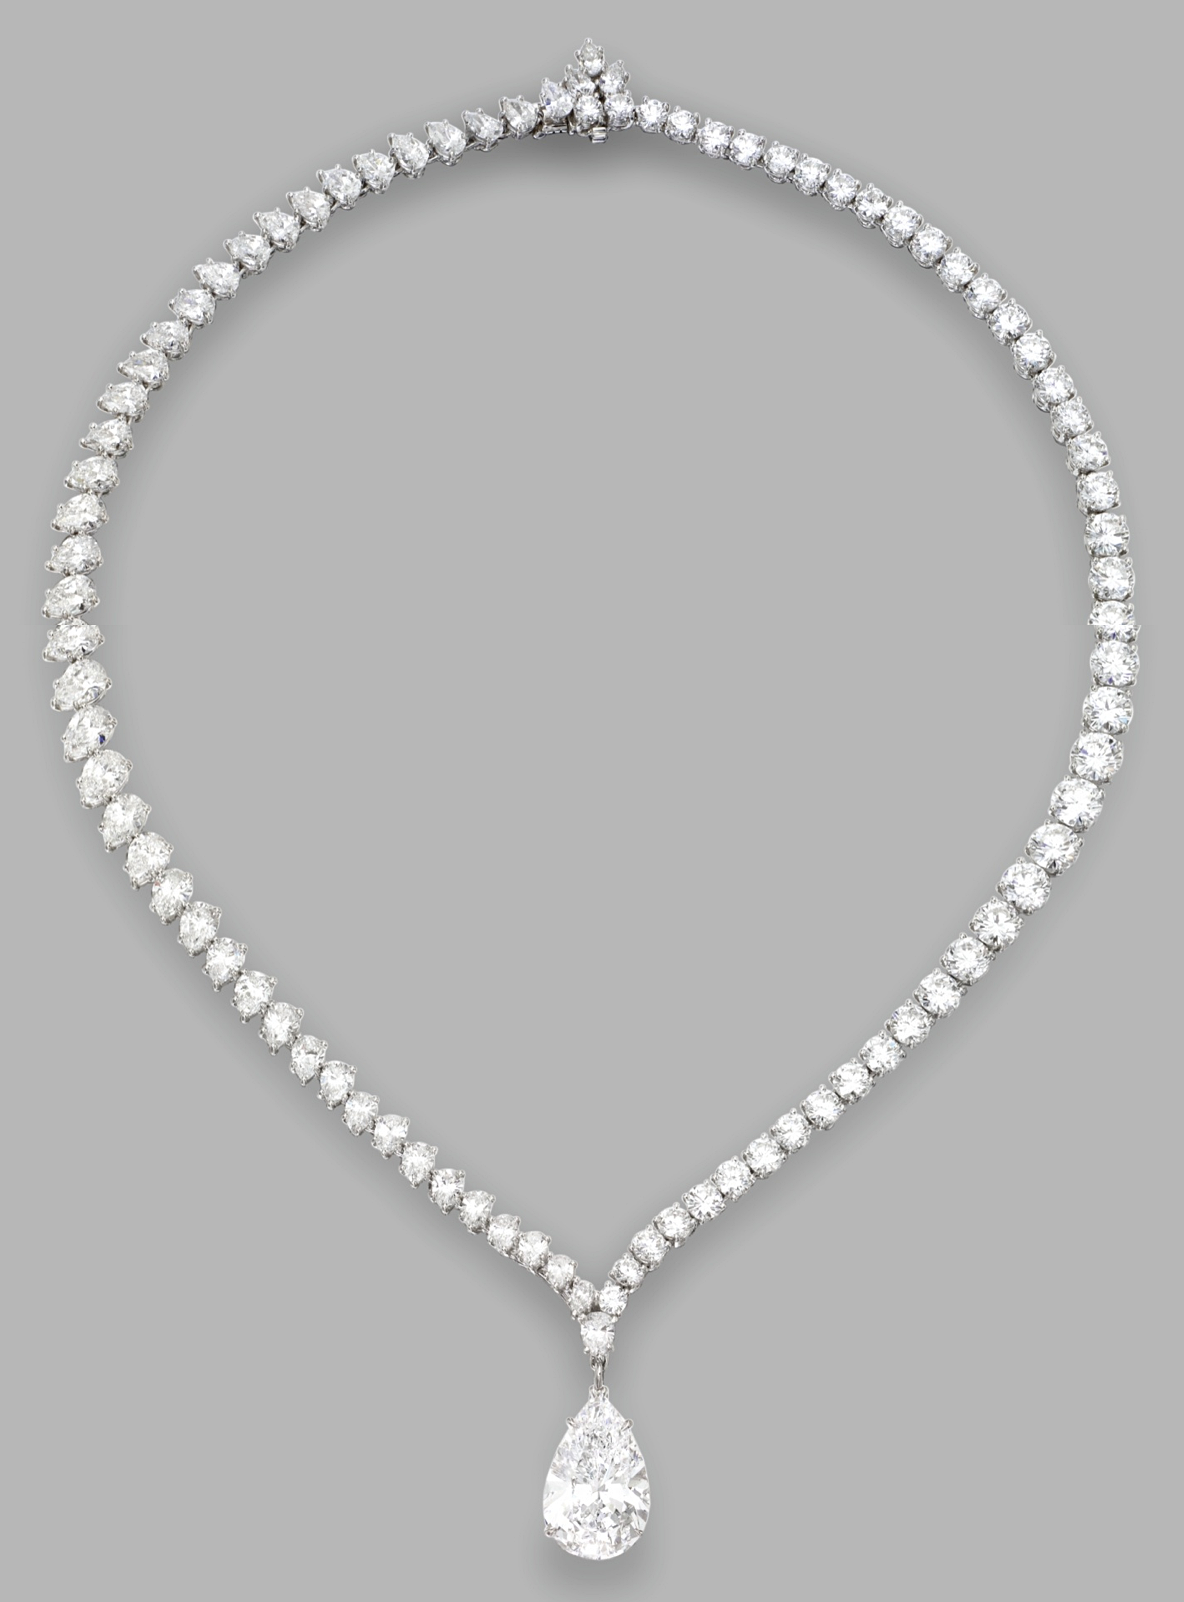 A highly important platinum and diamond pendant necklace harry a highly important platinum and diamond pendant necklace harry winston the pear shaped diamond weighing 1002 carats completed by a necklace set with aloadofball Images